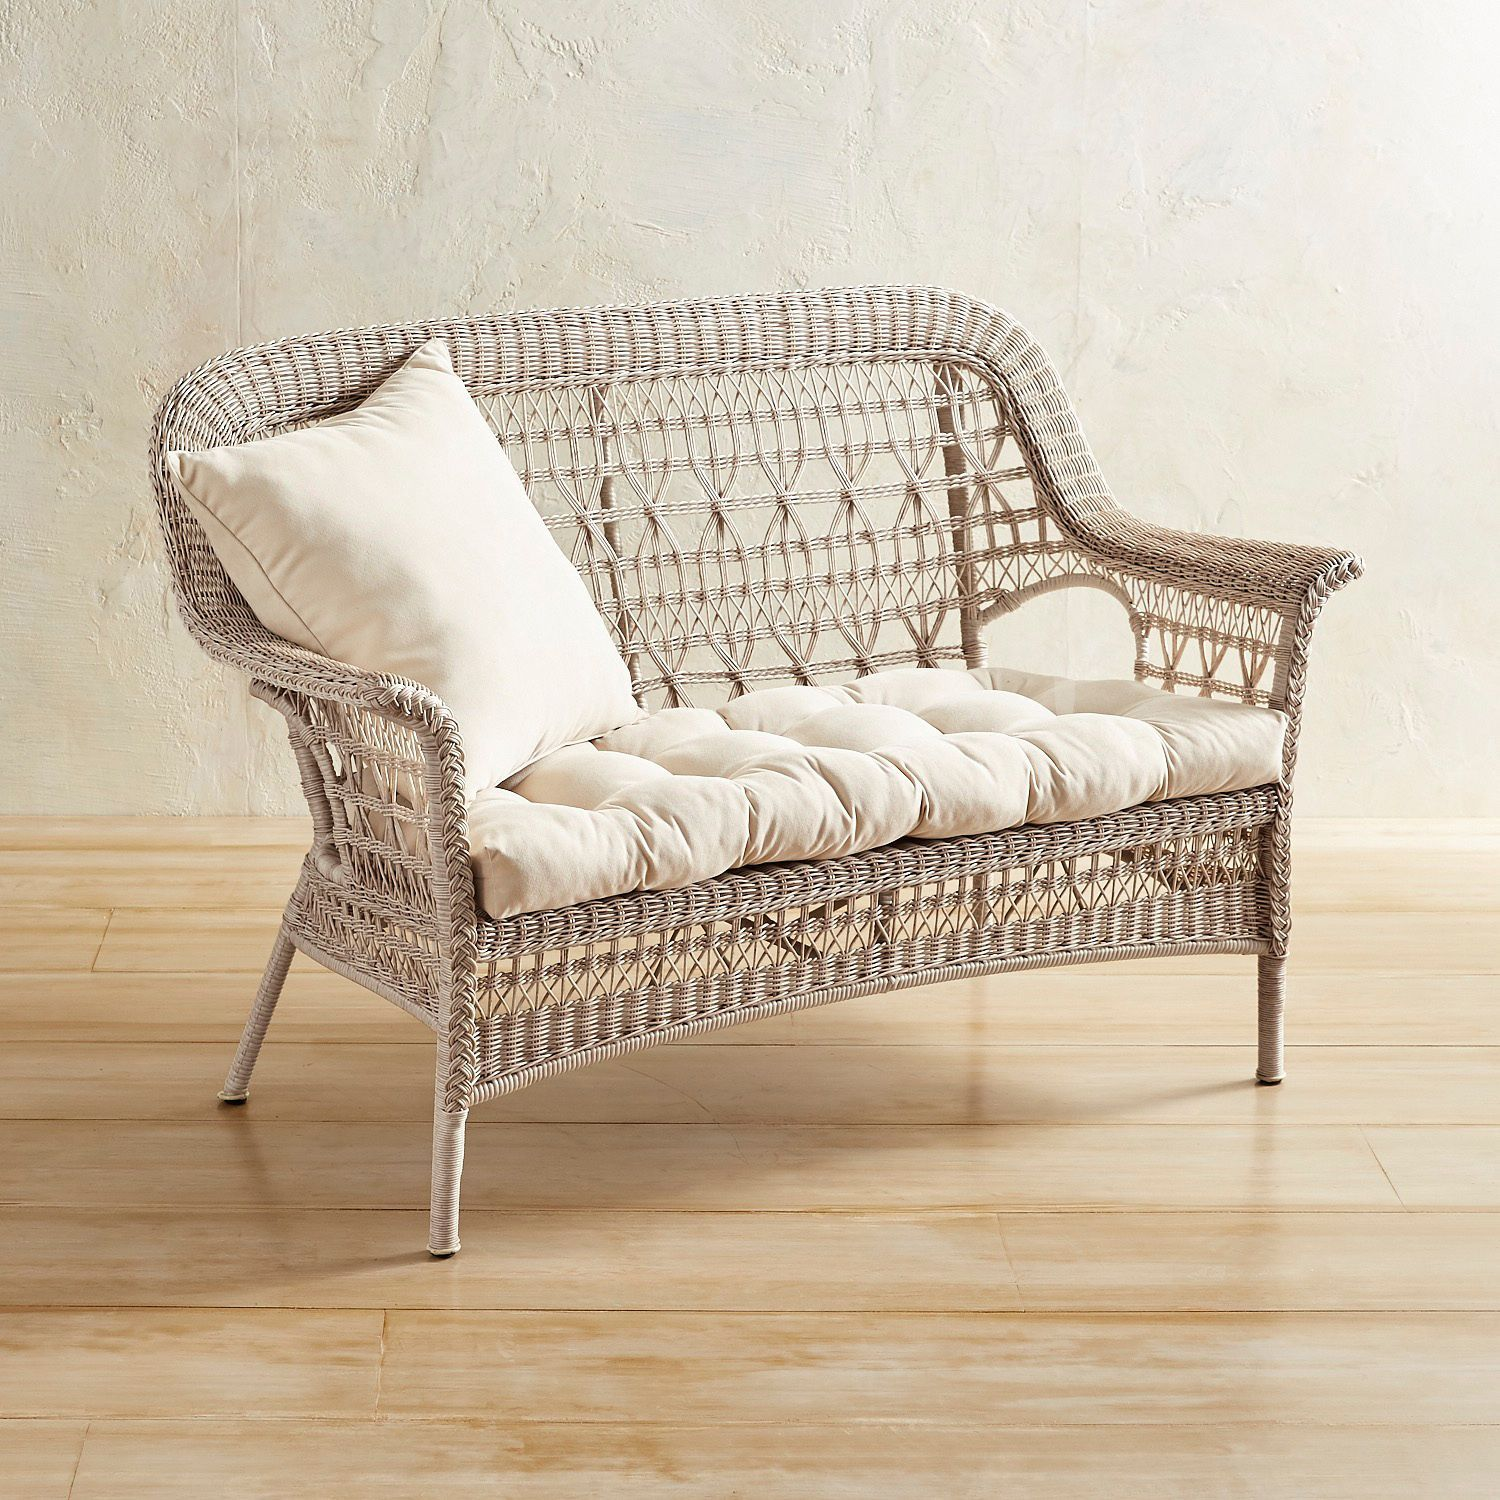 Layla Parchment Settee Pier 1 Imports Outdoor In 2019 Settee